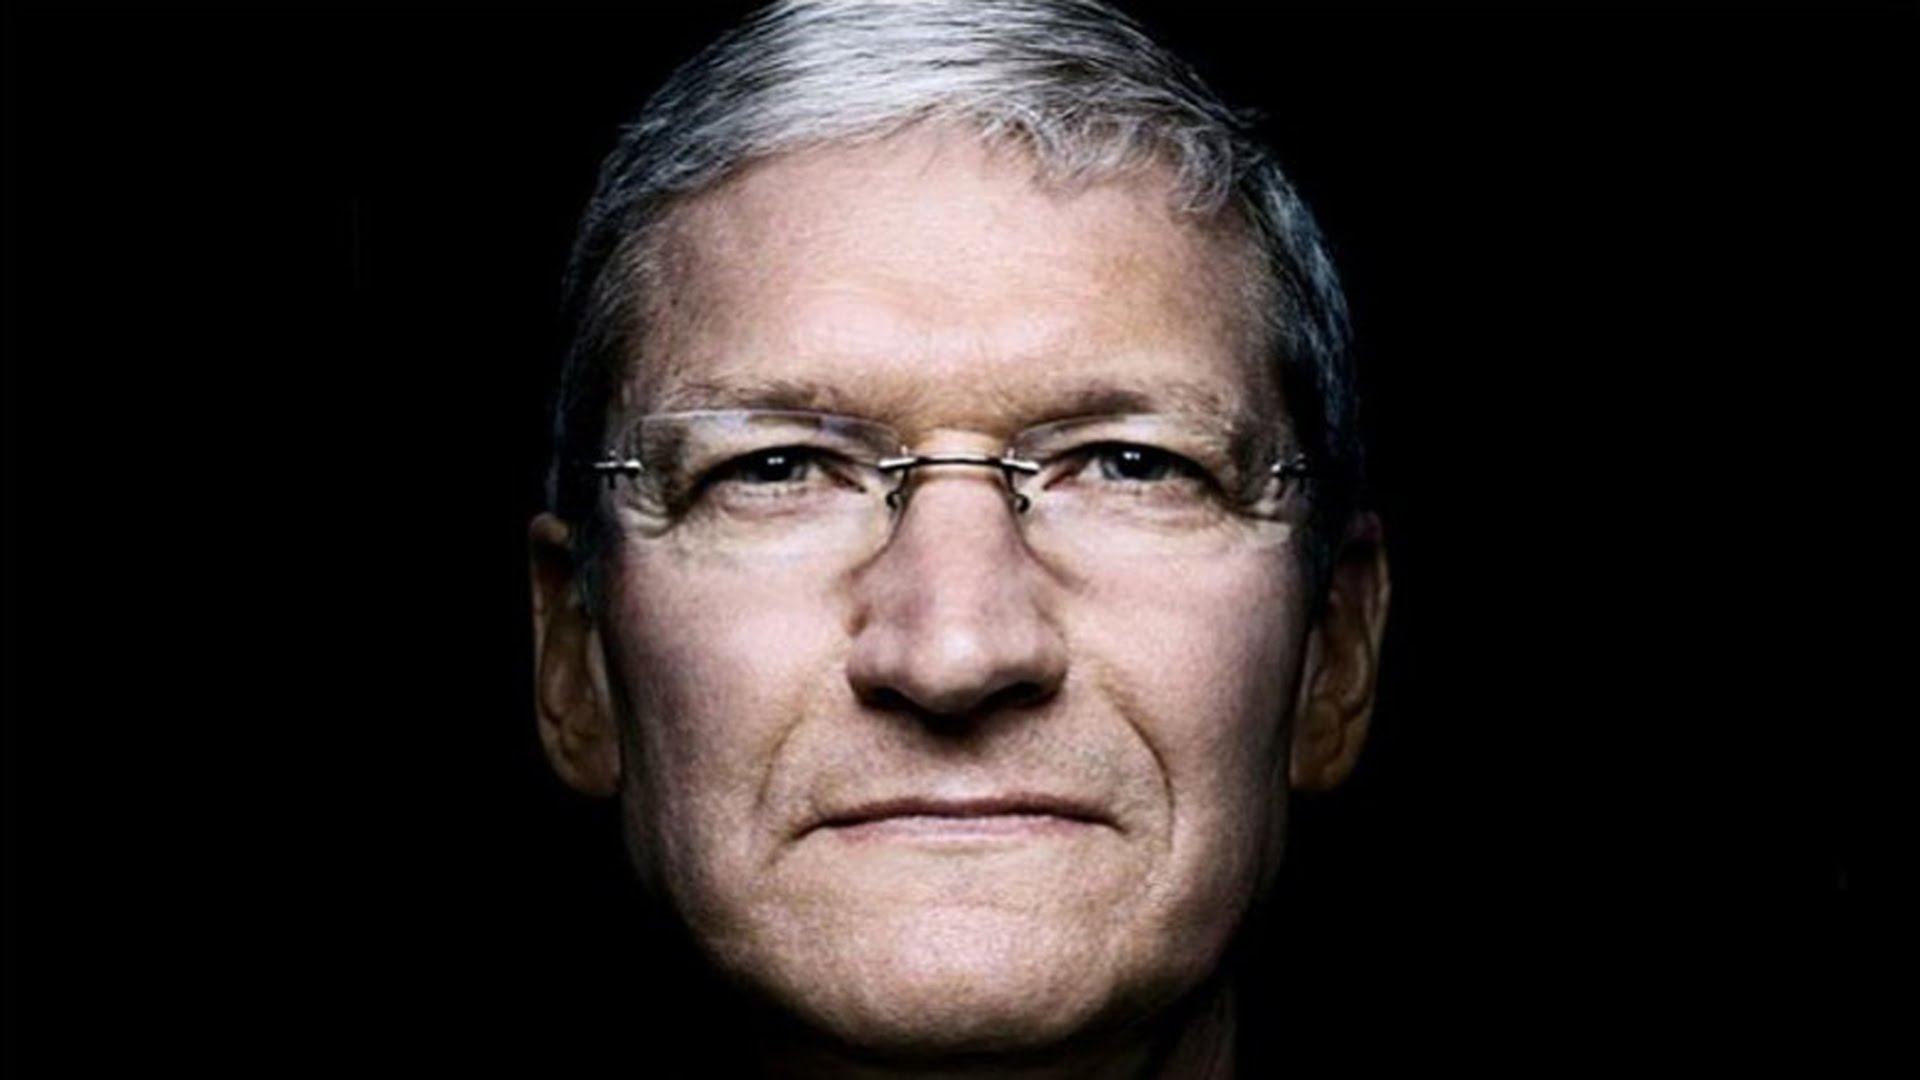 1920x1080 - Tim Cook Wallpapers 1